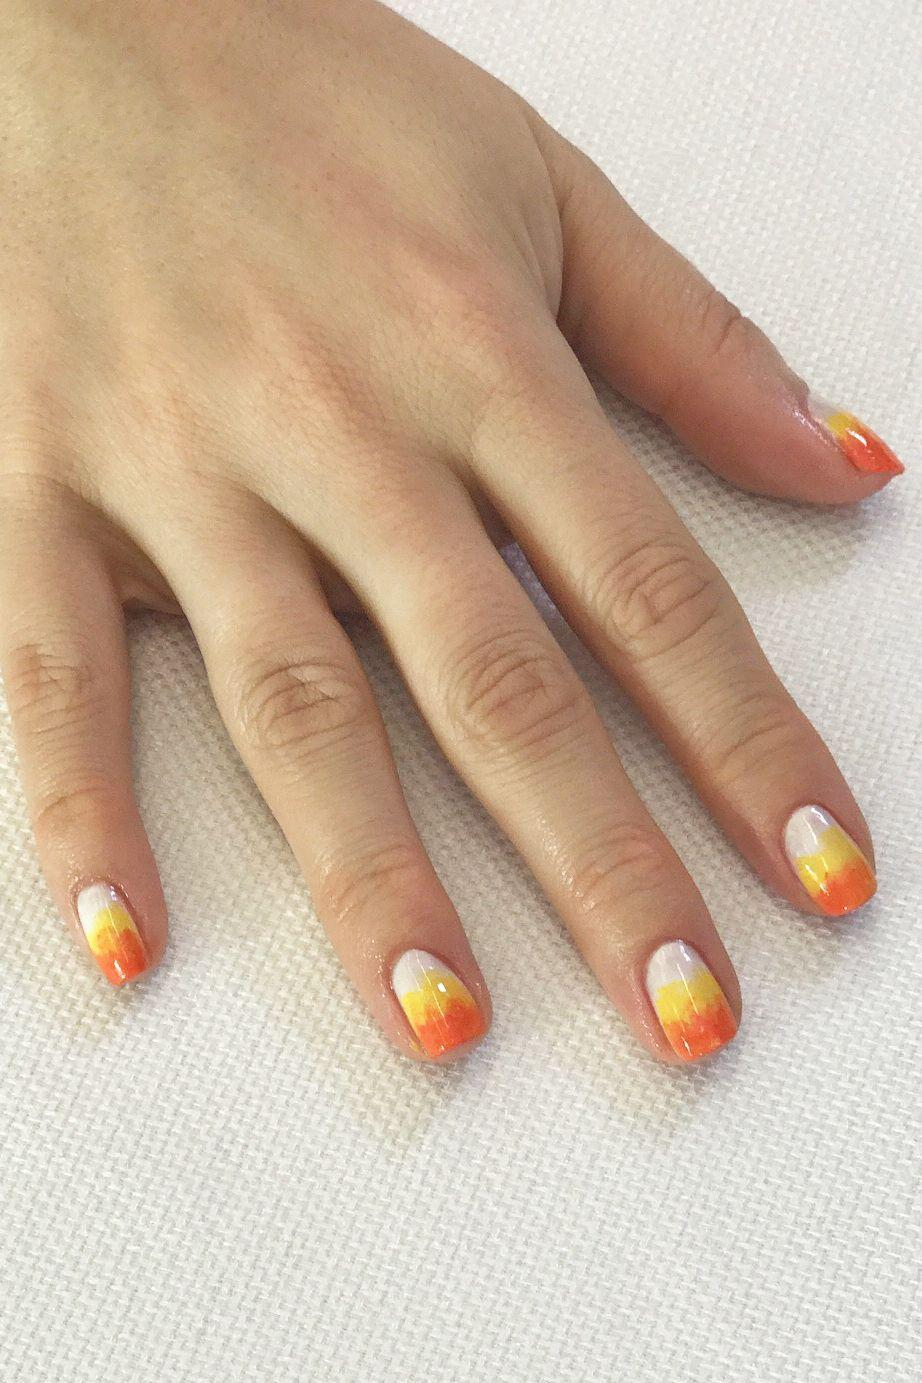 "<p>No steady hand required! Just resist the urge to eat all of your Halloween stash of candy corn while you paint (it's tough, we know). Start with a coat of white, and gently sponge yellow onto half of your nail, then orange on the ends to get the look.</p><p><a class=""link rapid-noclick-resp"" href=""https://www.amazon.com/TOODOO-Picking-Dotting-Gradient-Replacement/dp/B077P2LP25/?tag=syn-yahoo-20&ascsubtag=%5Bartid%7C10055.g.1421%5Bsrc%7Cyahoo-us"" rel=""nofollow noopener"" target=""_blank"" data-ylk=""slk:SHOP NAIL SPONGE"">SHOP NAIL SPONGE</a> </p>"